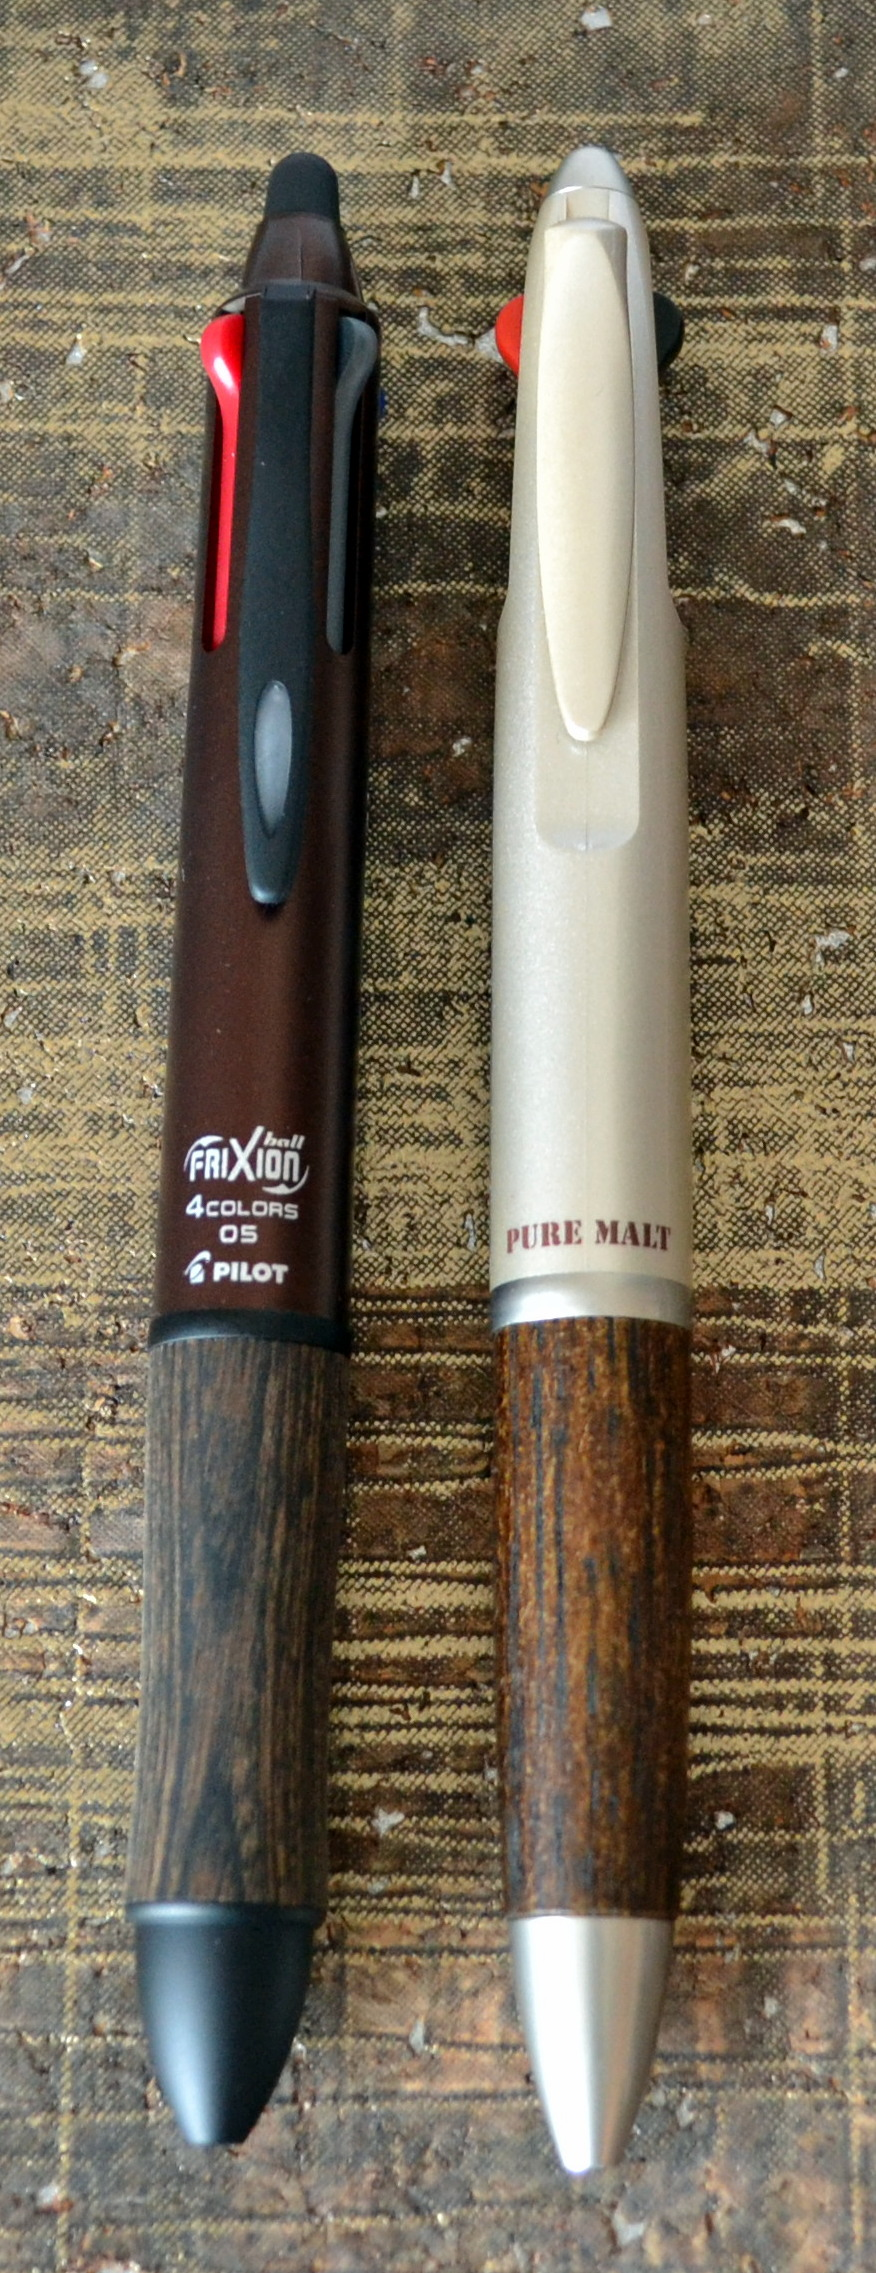 Frixion Ball 4 Wood with Unit Pure Malt